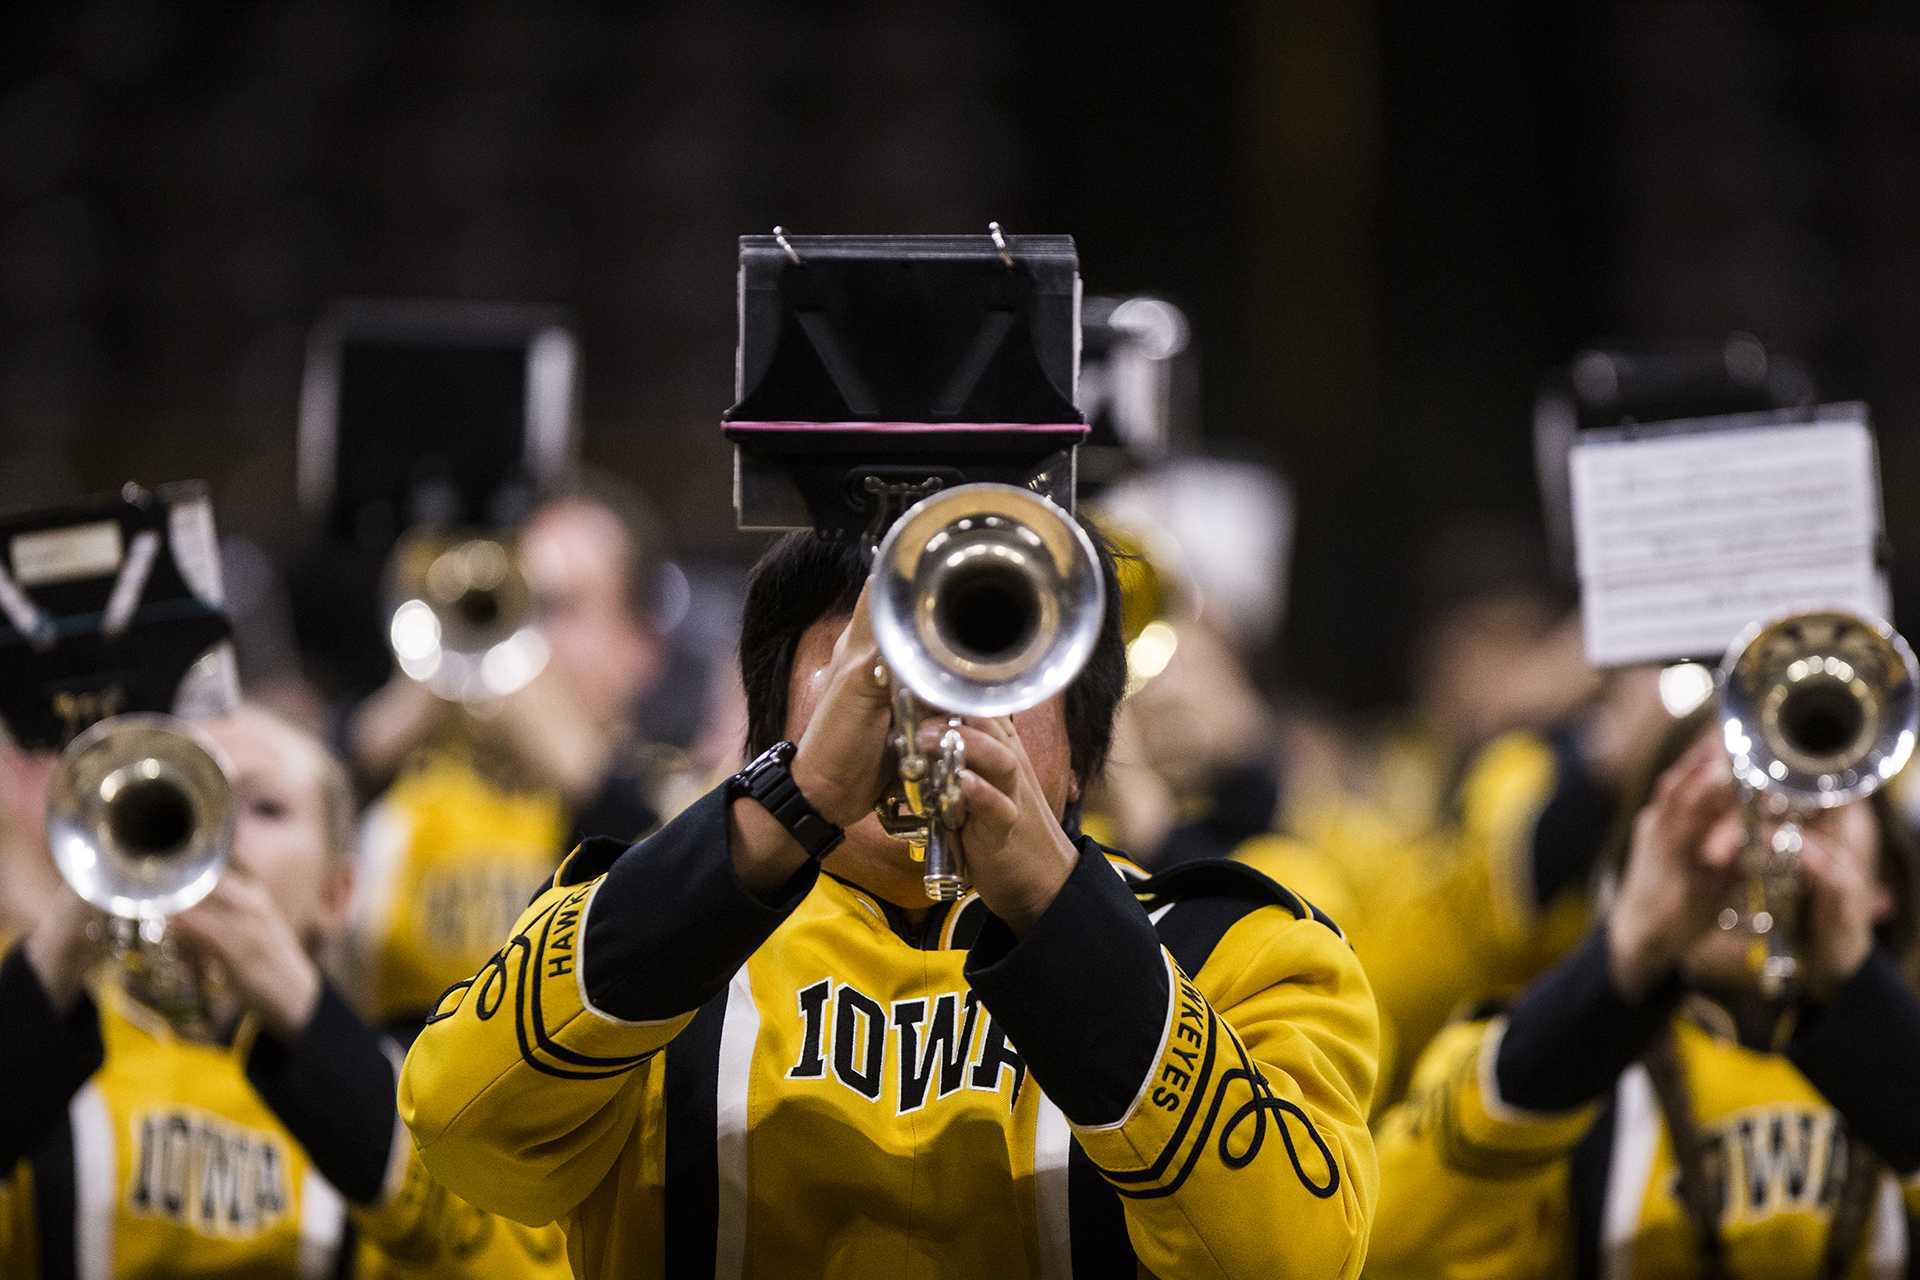 Members of the Hawkeye Marching Band perform during the Band Extravaganza at Carver-Hawkeye Arena on Monday, Nov. 13, 2017. The 260 member group performed favorites from an array of songs. (Ben Smith/The Daily Iowan)